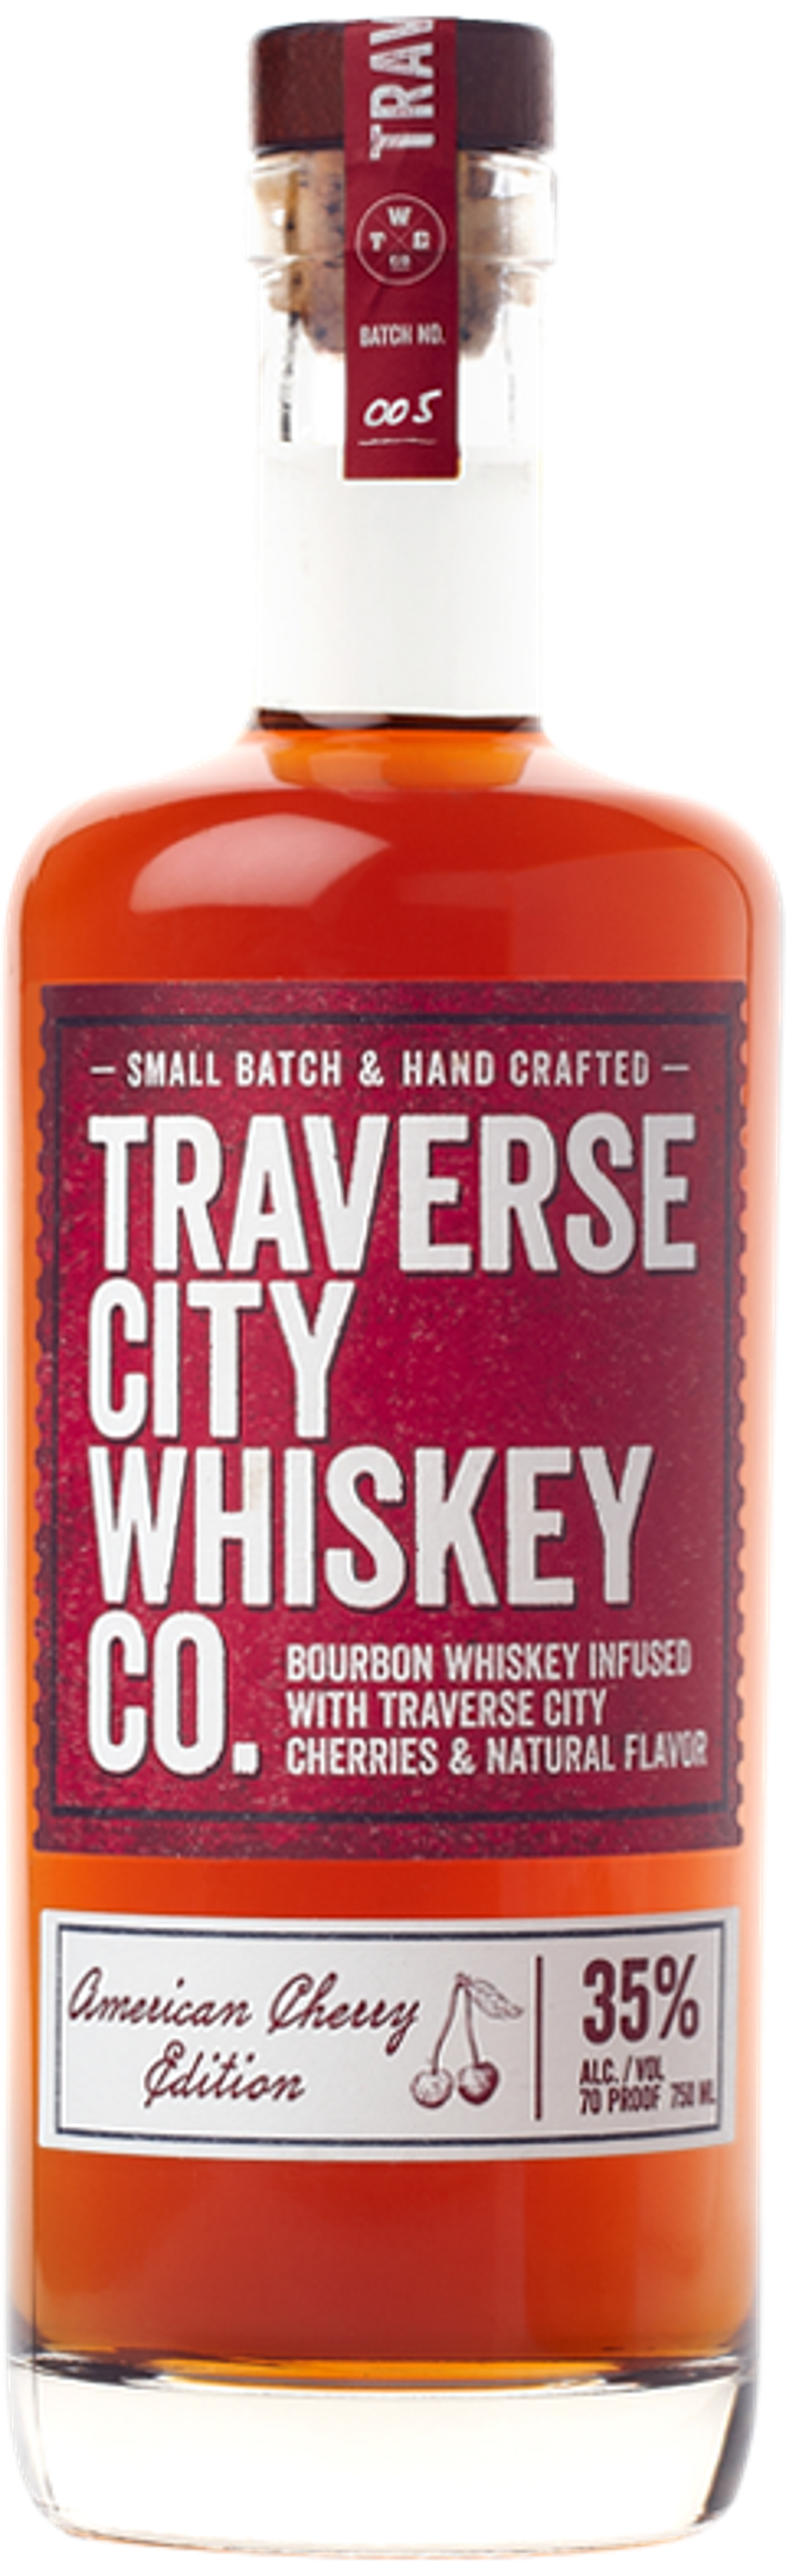 A bottle of American Cherry Edition bourbon.